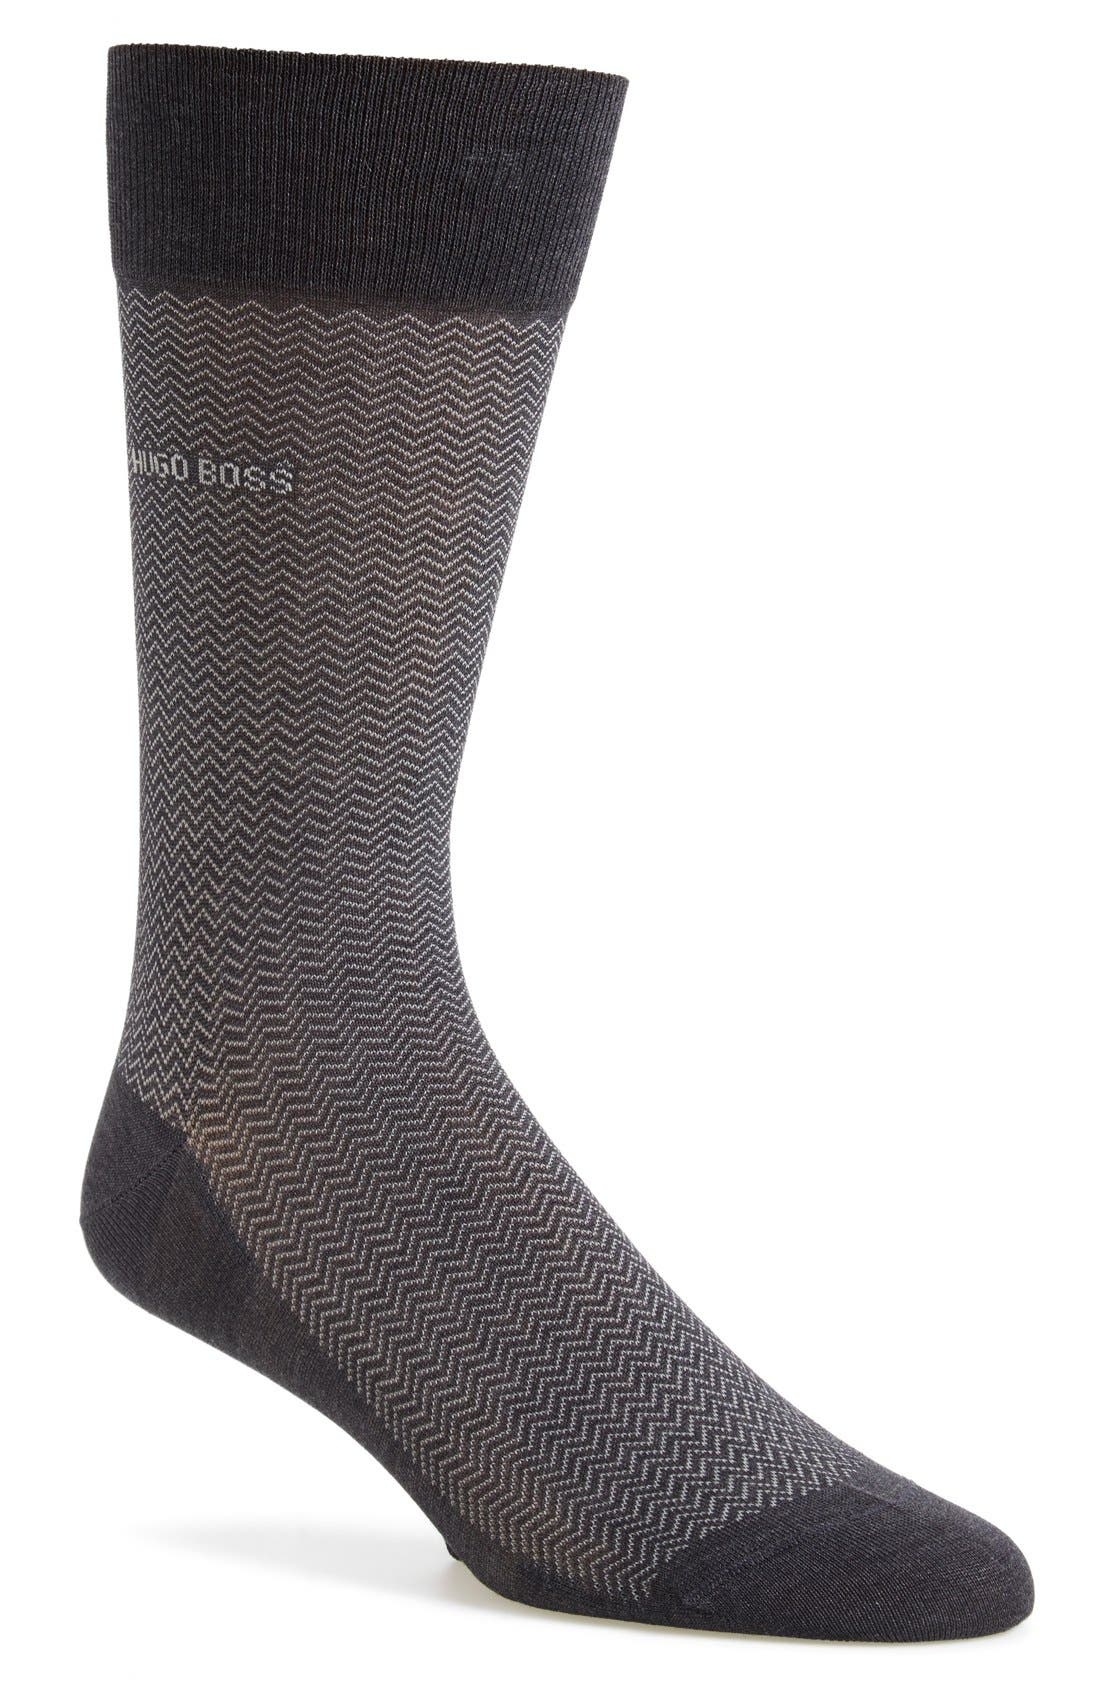 'David' Herringbone Socks,                             Main thumbnail 1, color,                             Charcoal